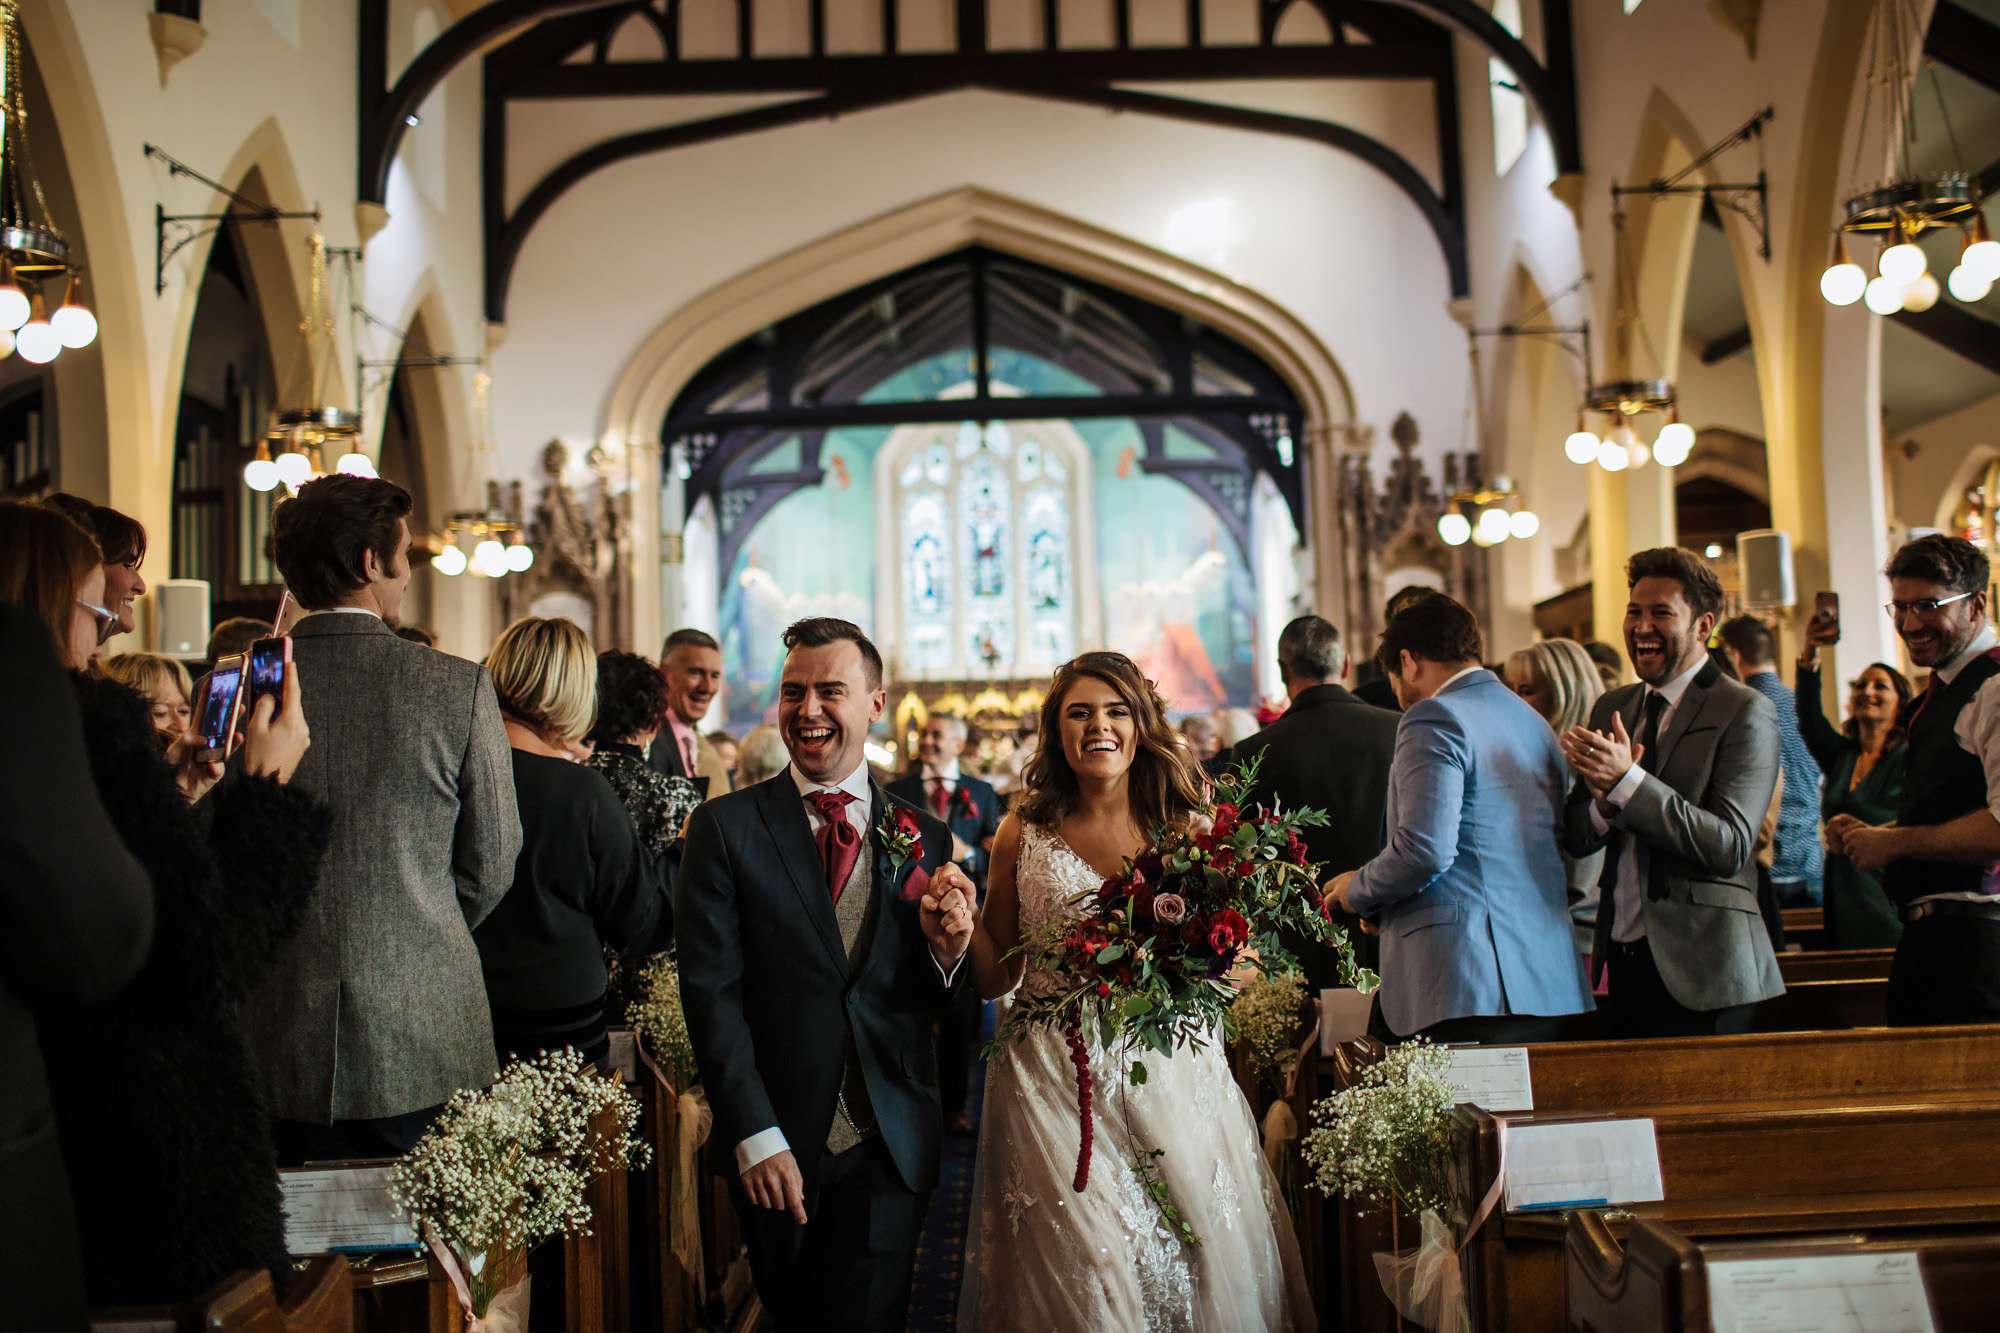 Bride and groom walk down the aisle at the church wedding